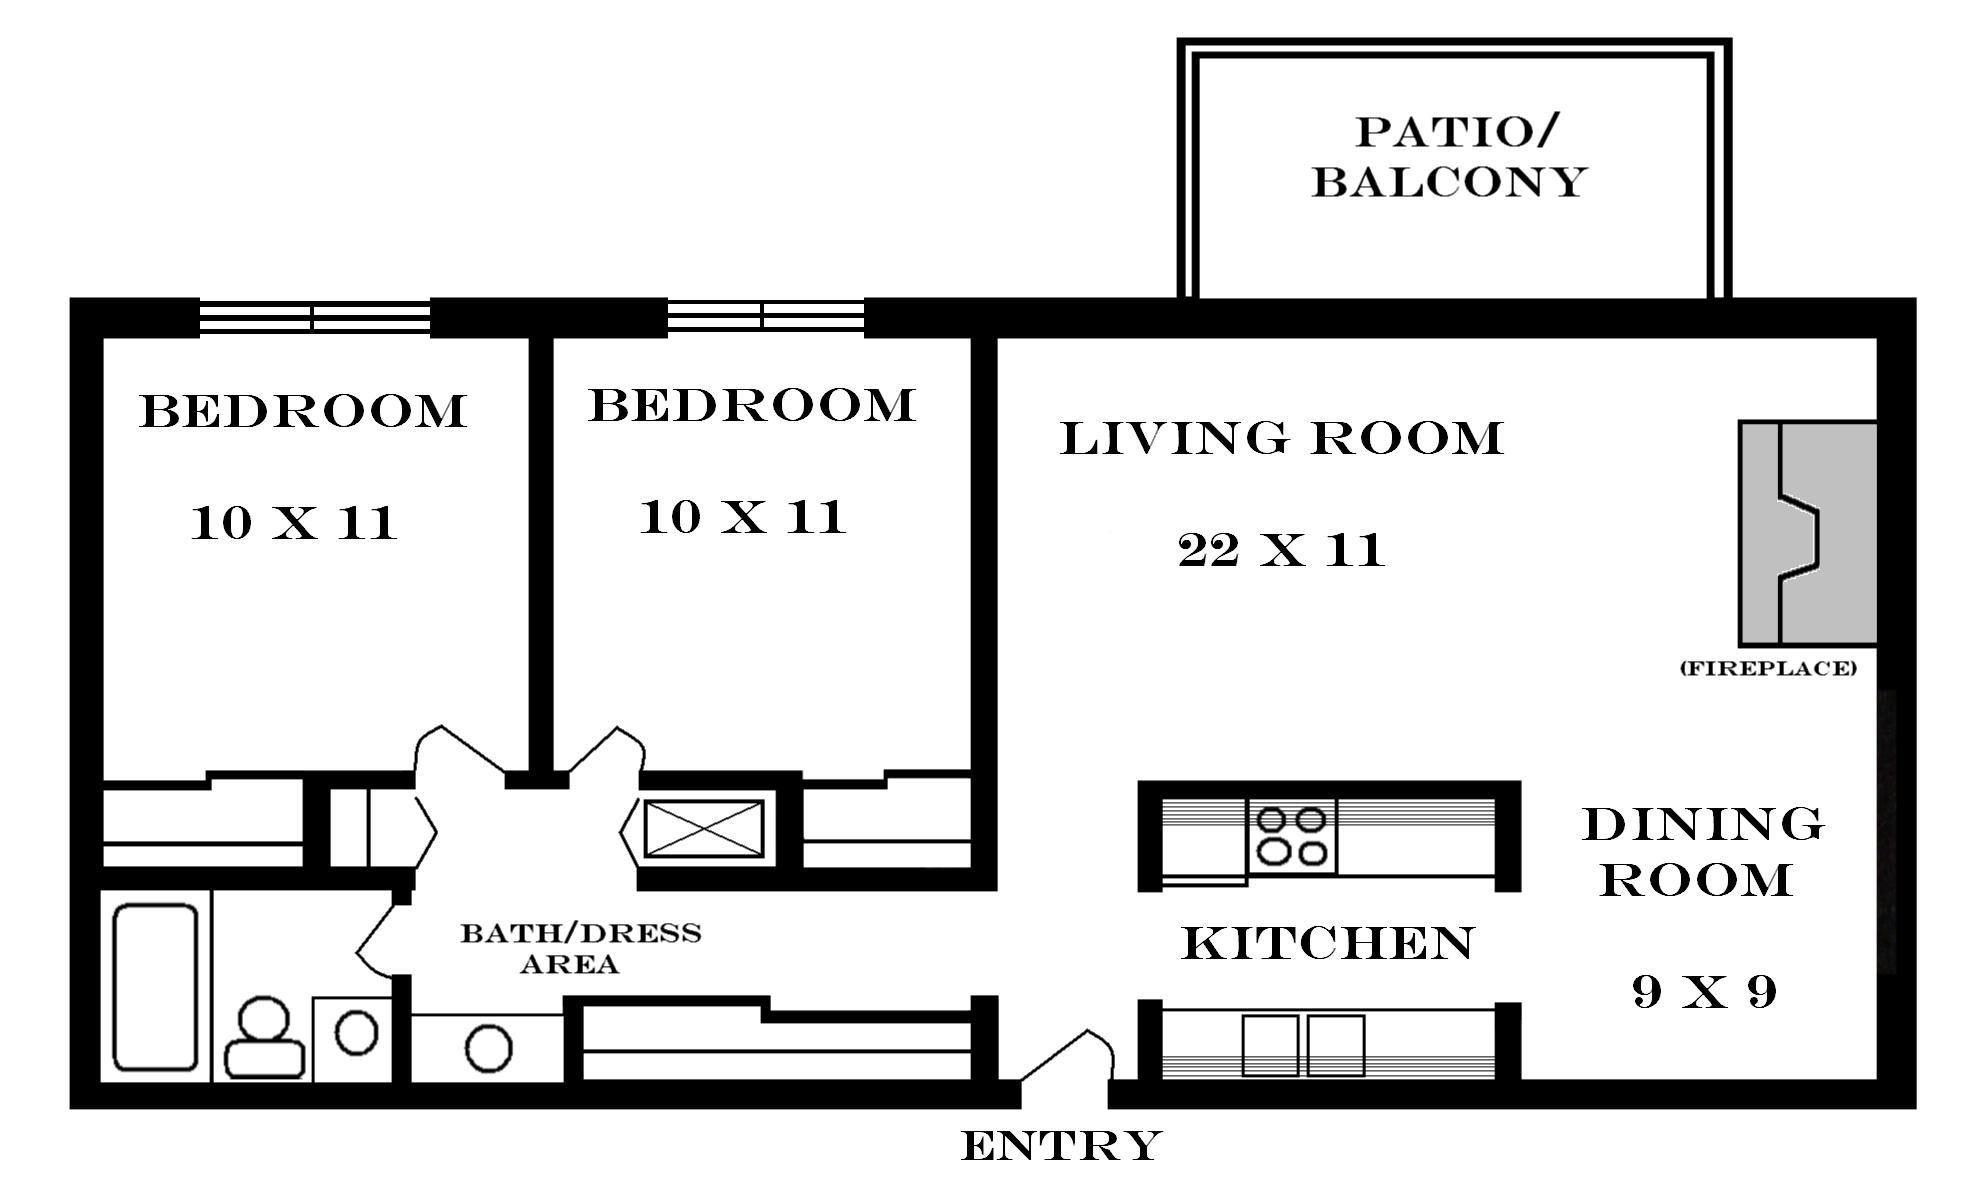 Small house floor plans 2 bedrooms 900 tiny houses for 2 bedroom 2 bath apartment floor plans